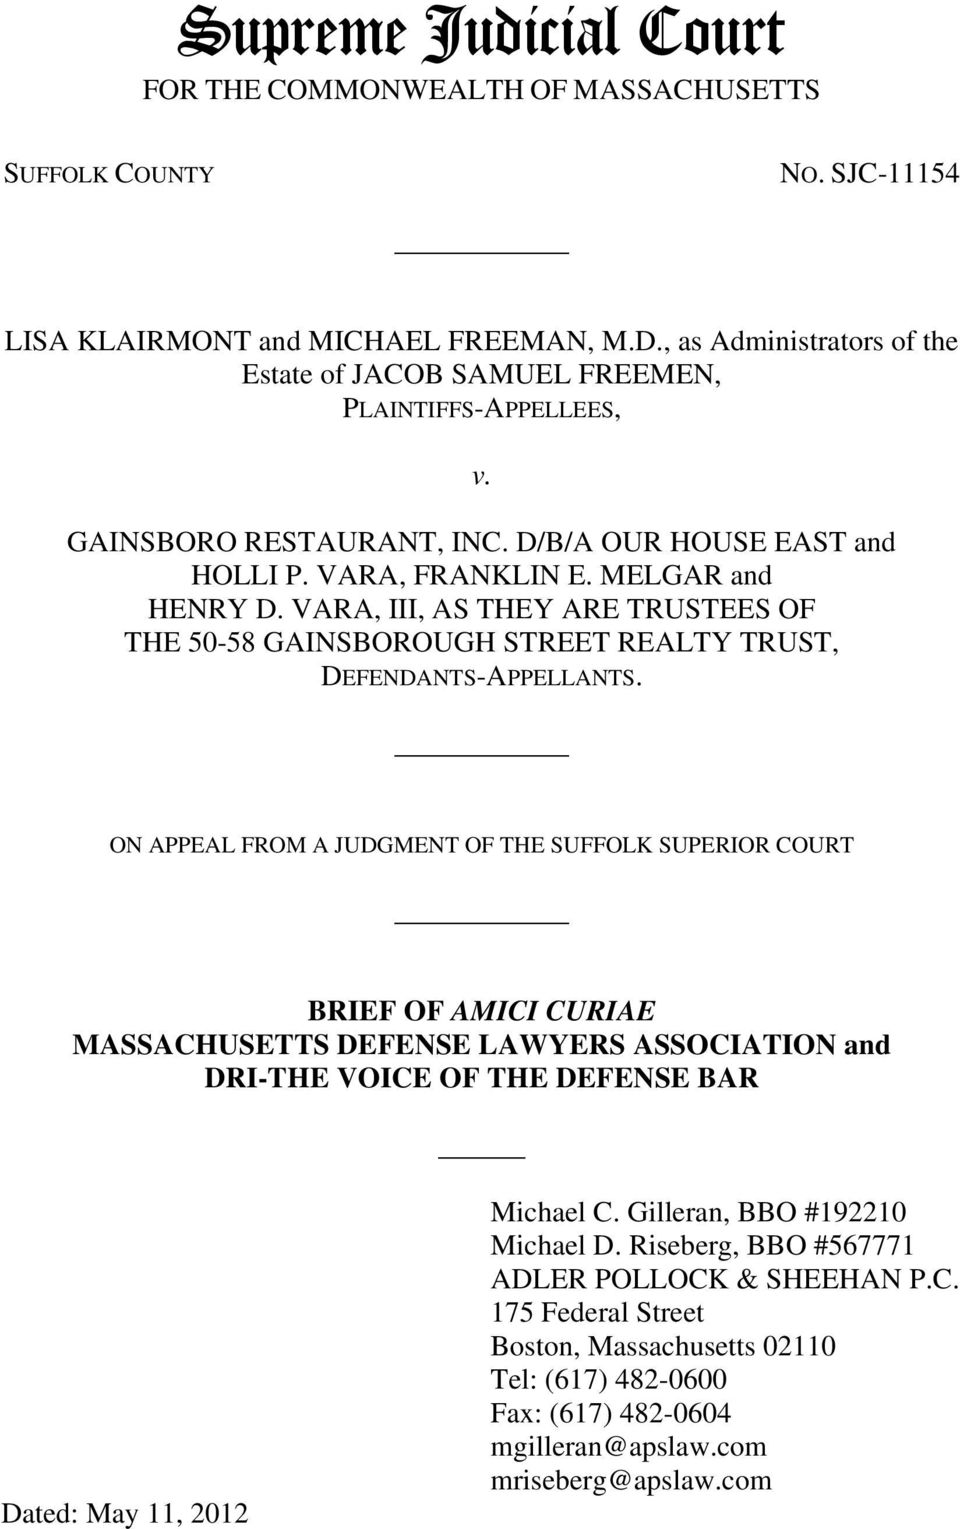 VARA, III, AS THEY ARE TRUSTEES OF THE 50-58 GAINSBOROUGH STREET REALTY TRUST, DEFENDANTS-APPELLANTS.